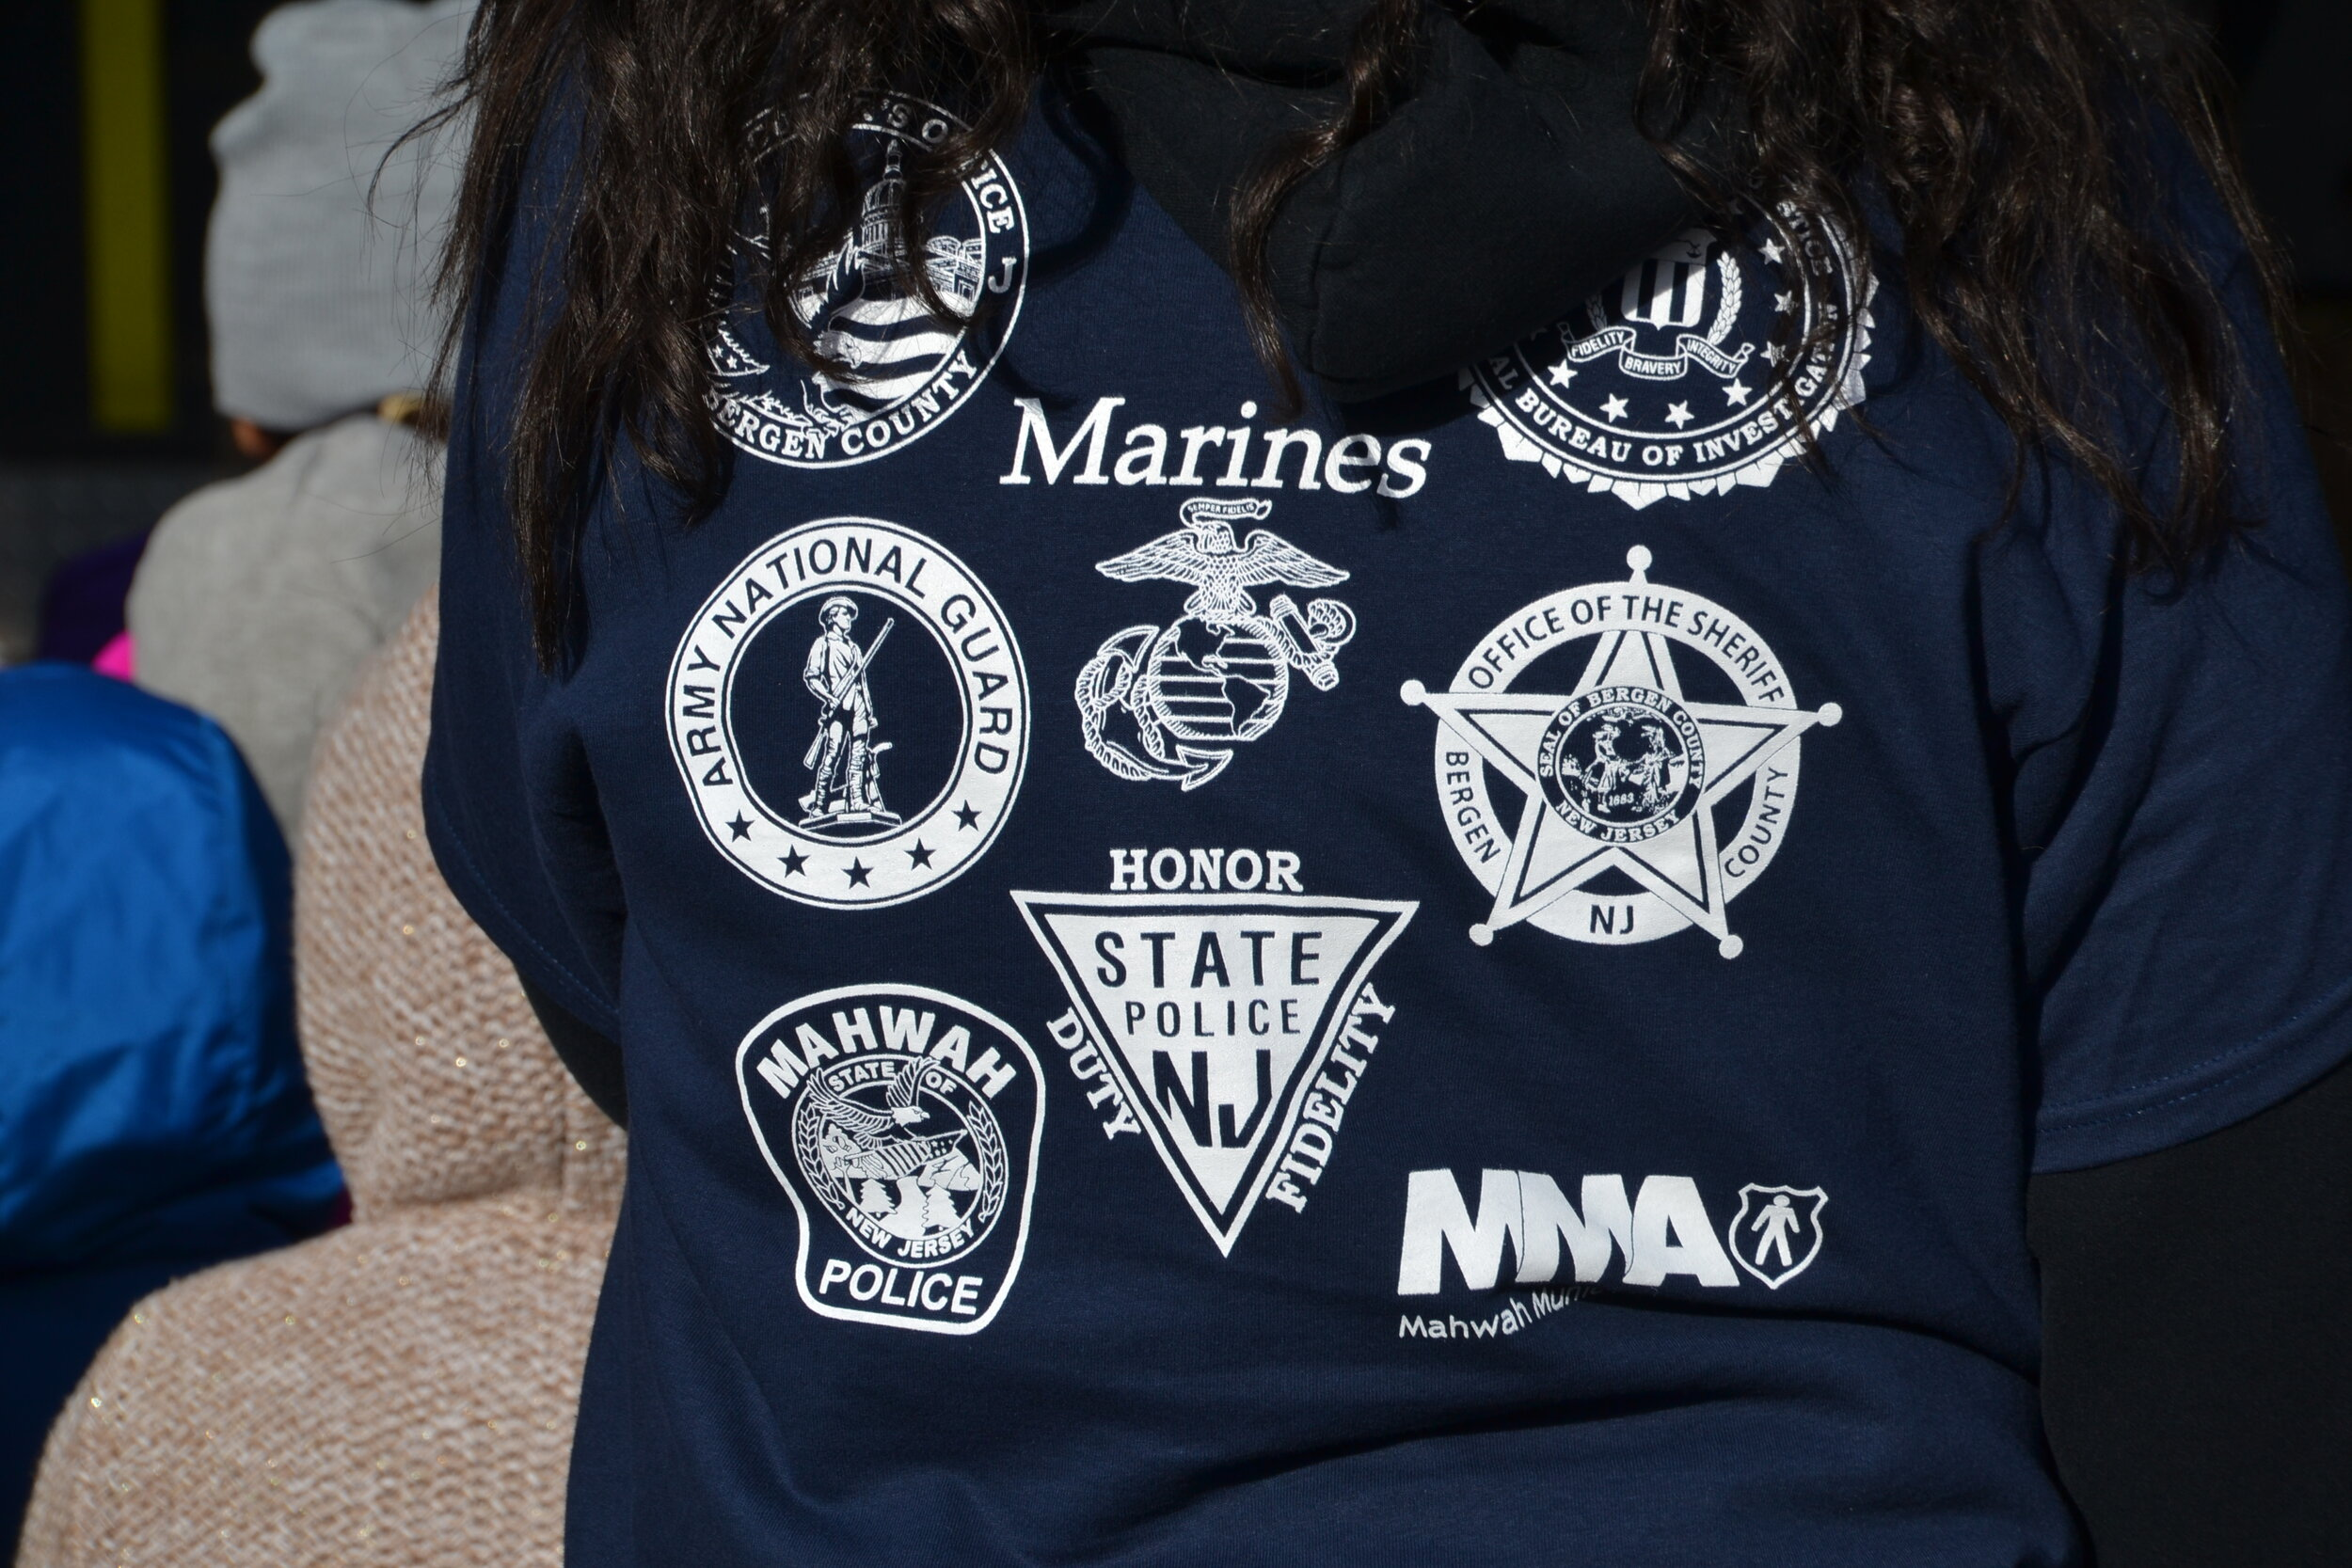 mahwah police t-shirt junior police academy armed services